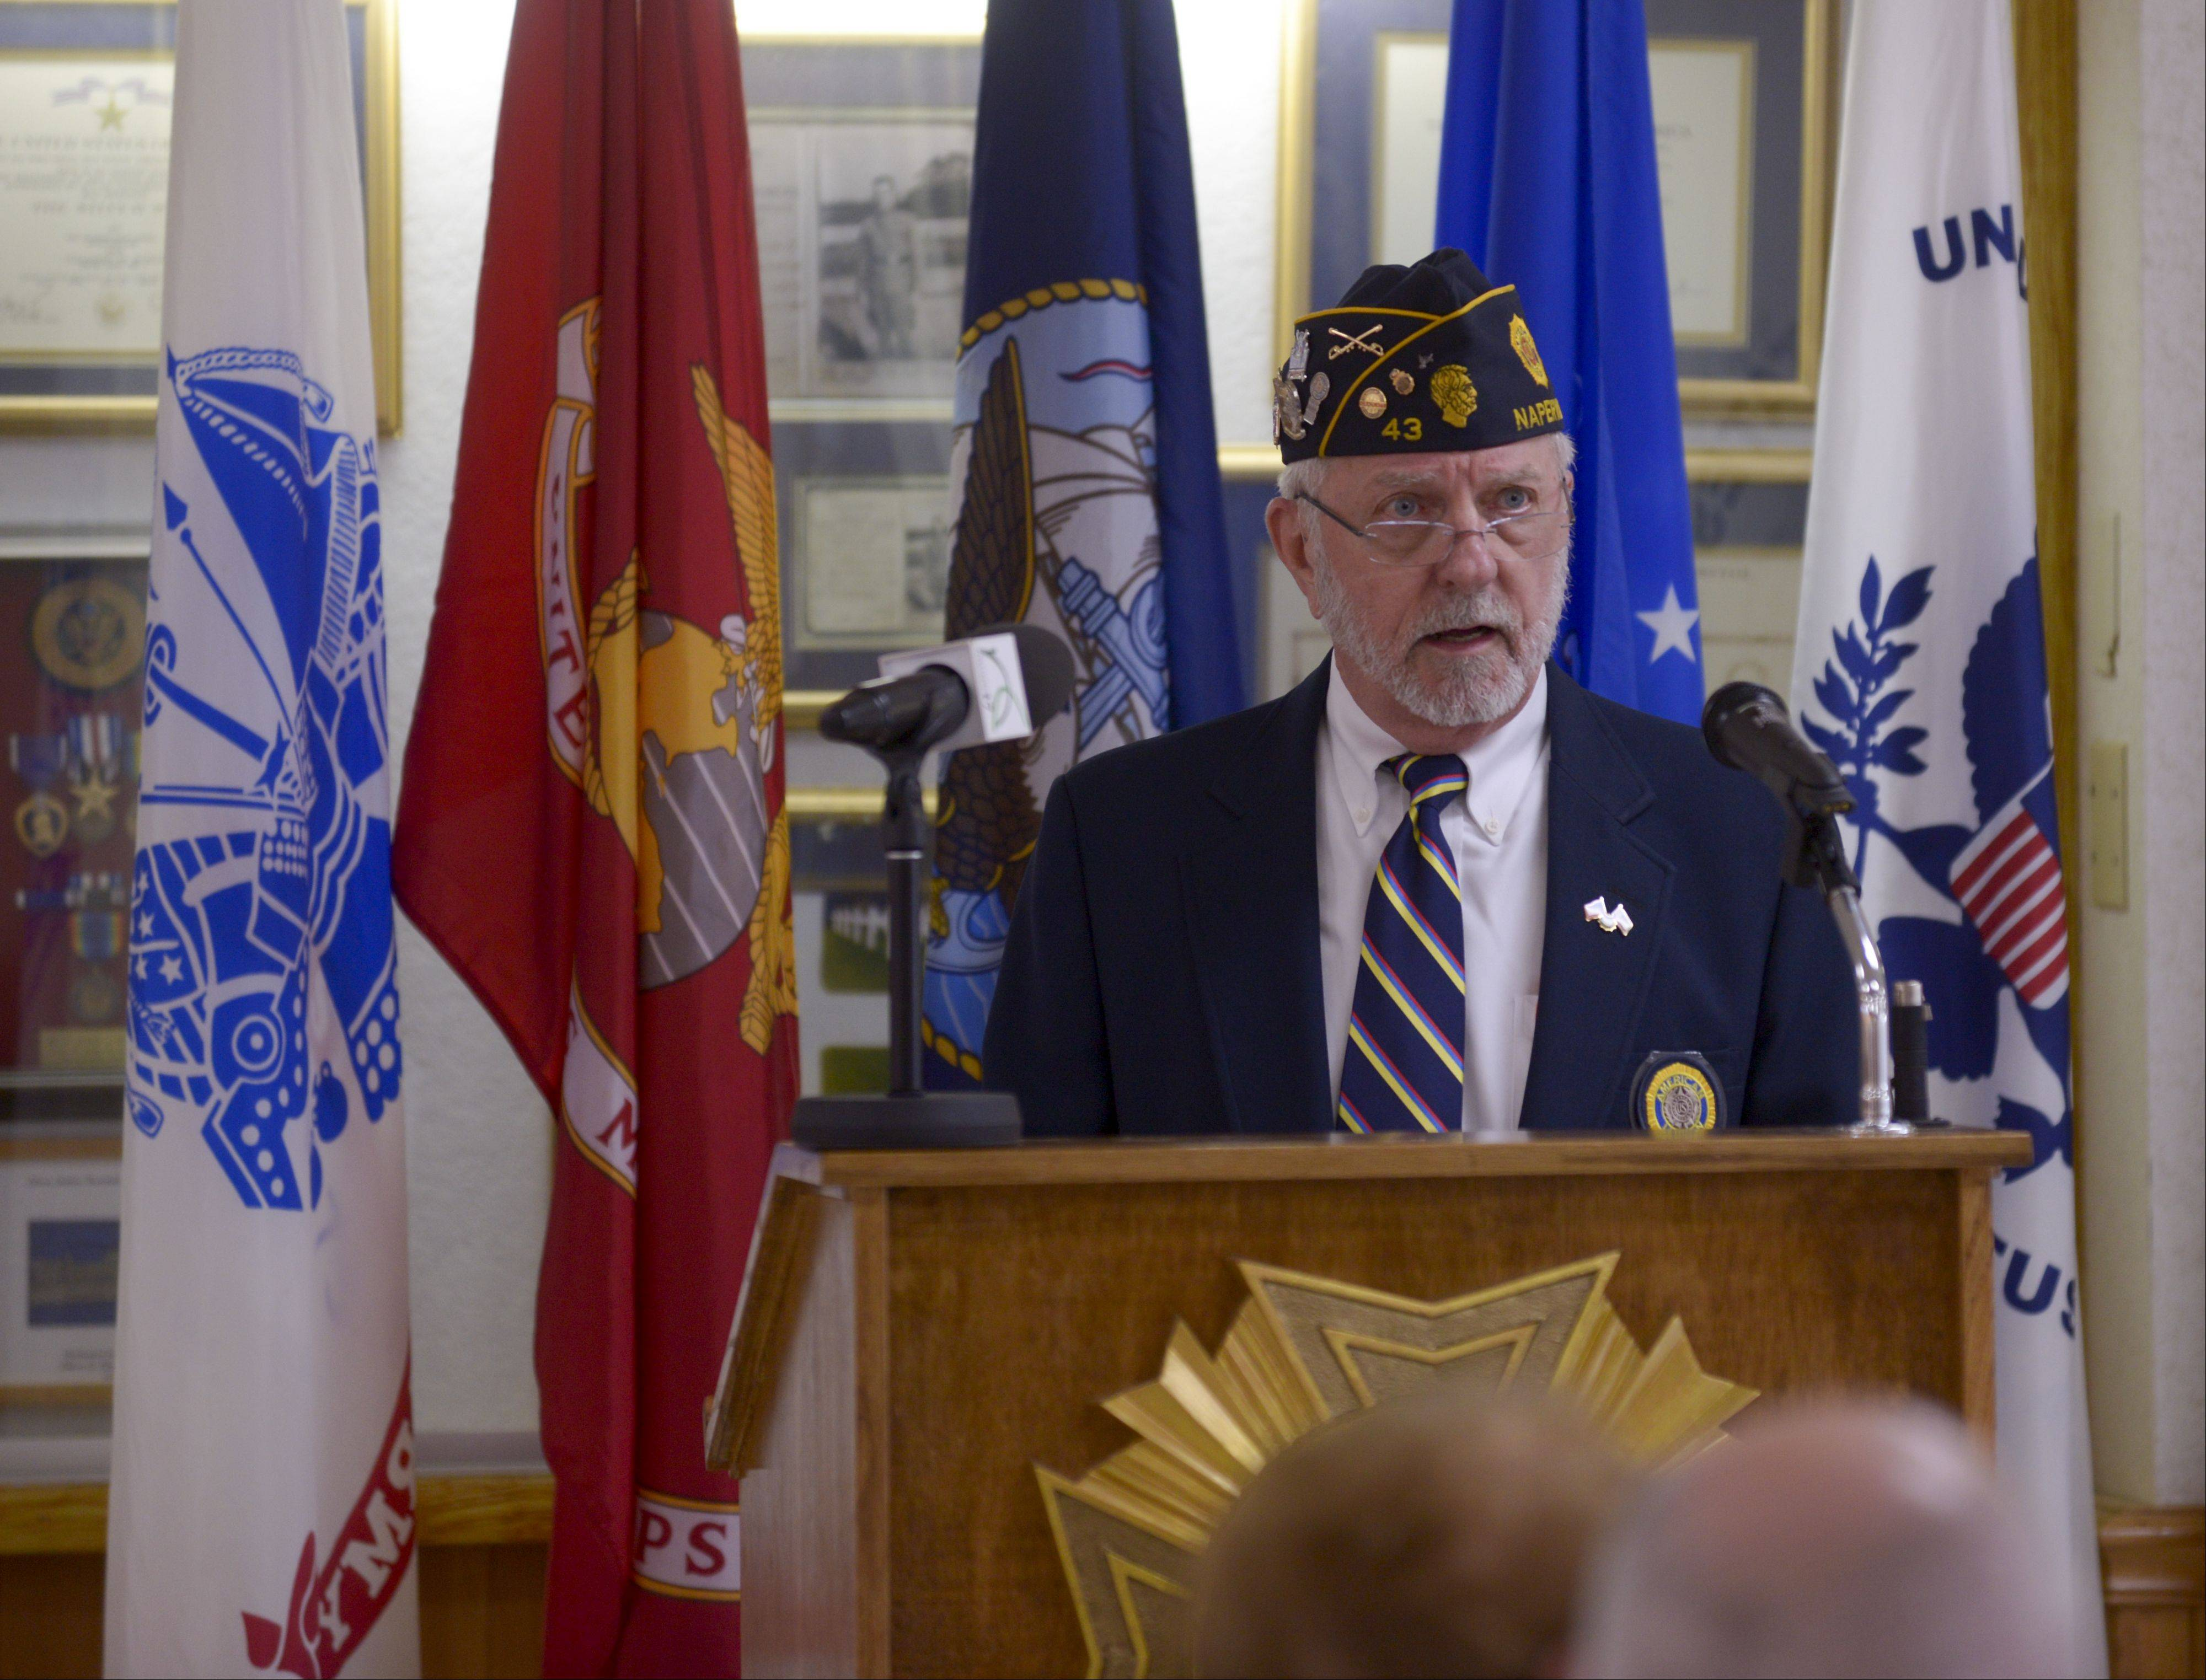 Jim Vahle of American Legion Post 43 acted as master of ceremony Sunday during the Blue Star Service Banners program that presented banners to families with loved ones serving in the armed forces.